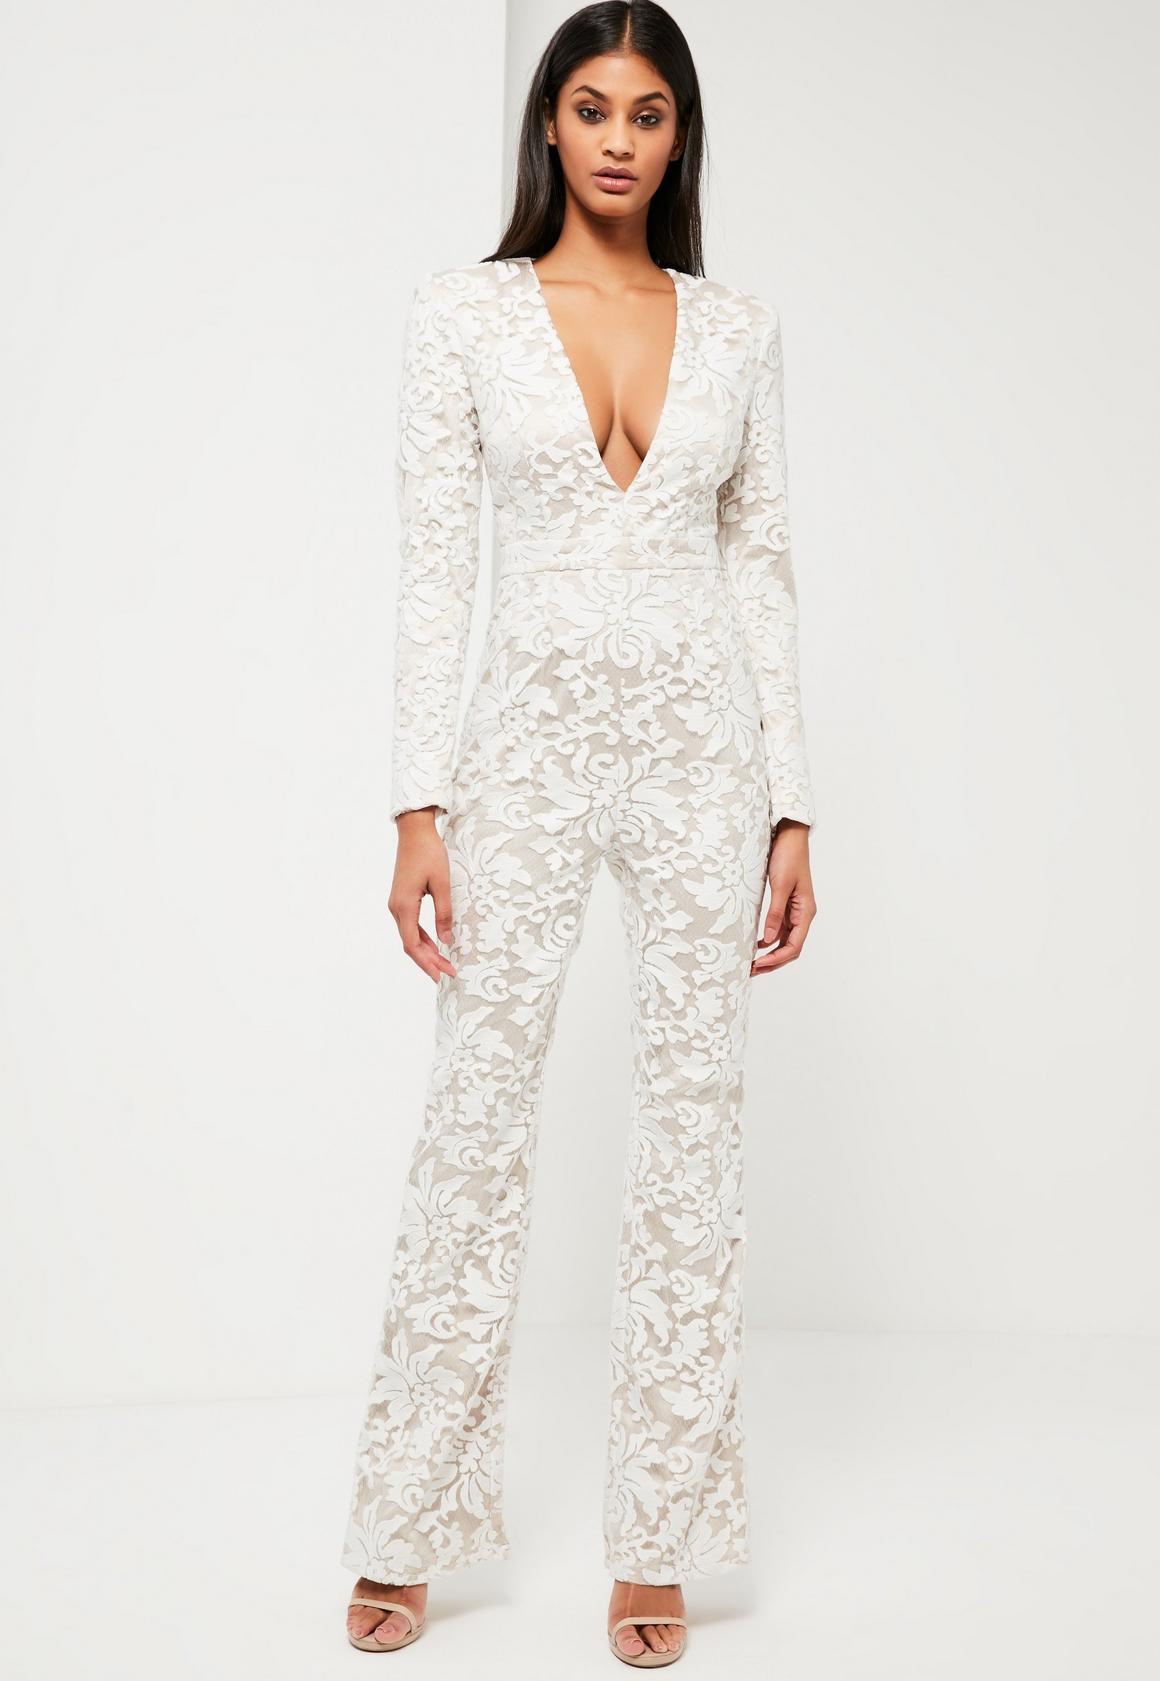 White Jumpsuits | Women's White Dungarees - Missguided